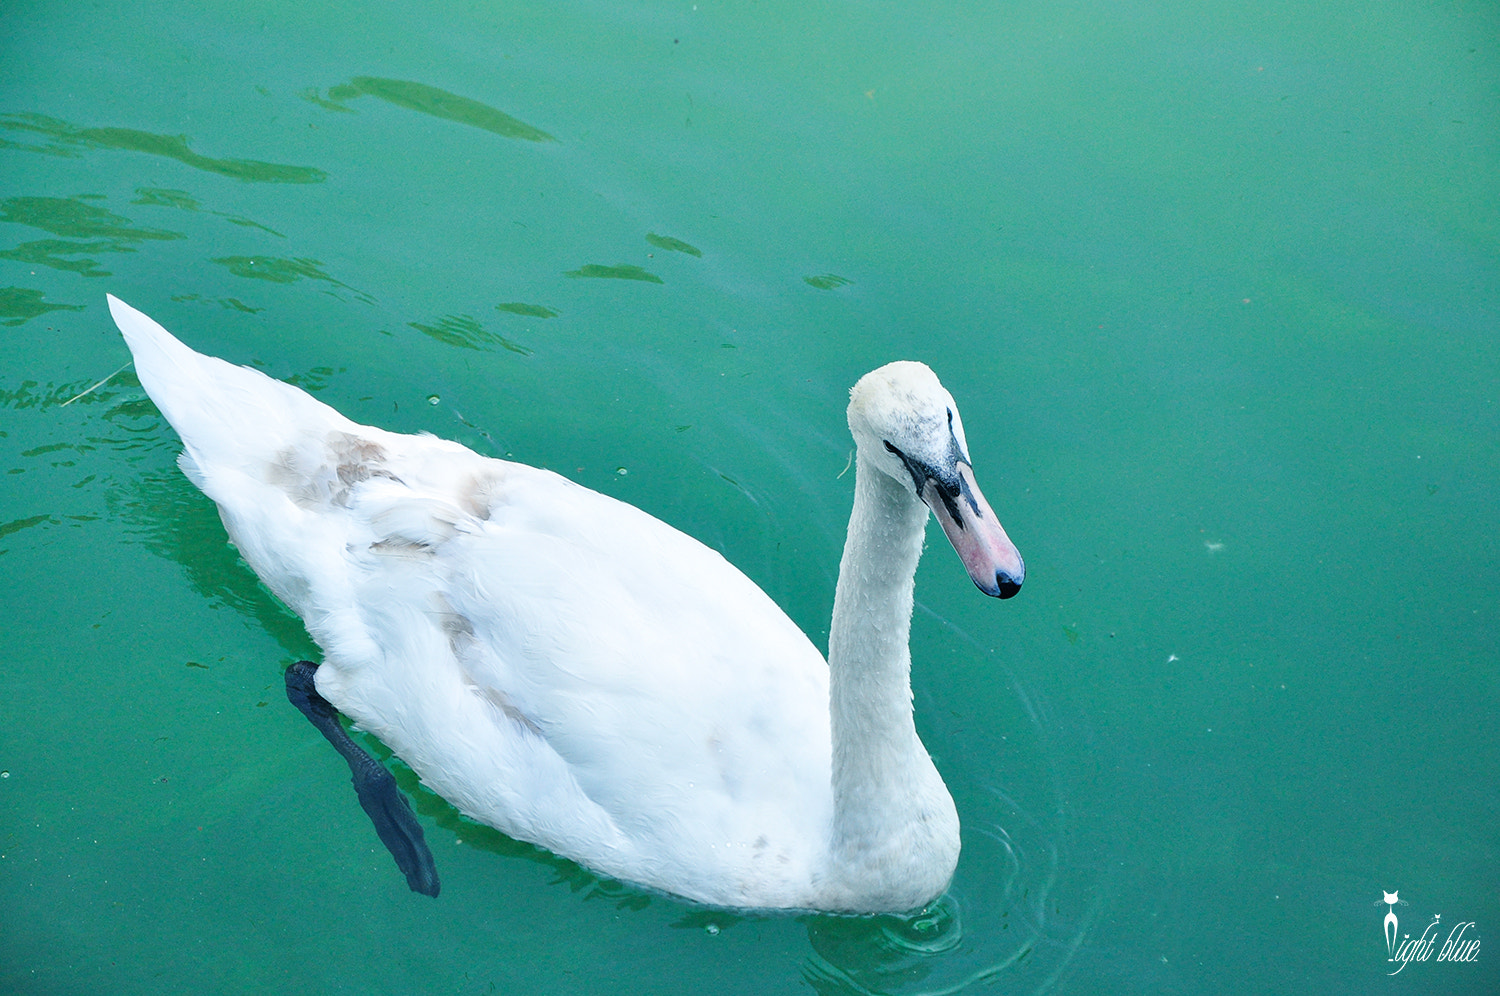 Photograph lovely swan by na shang on 500px